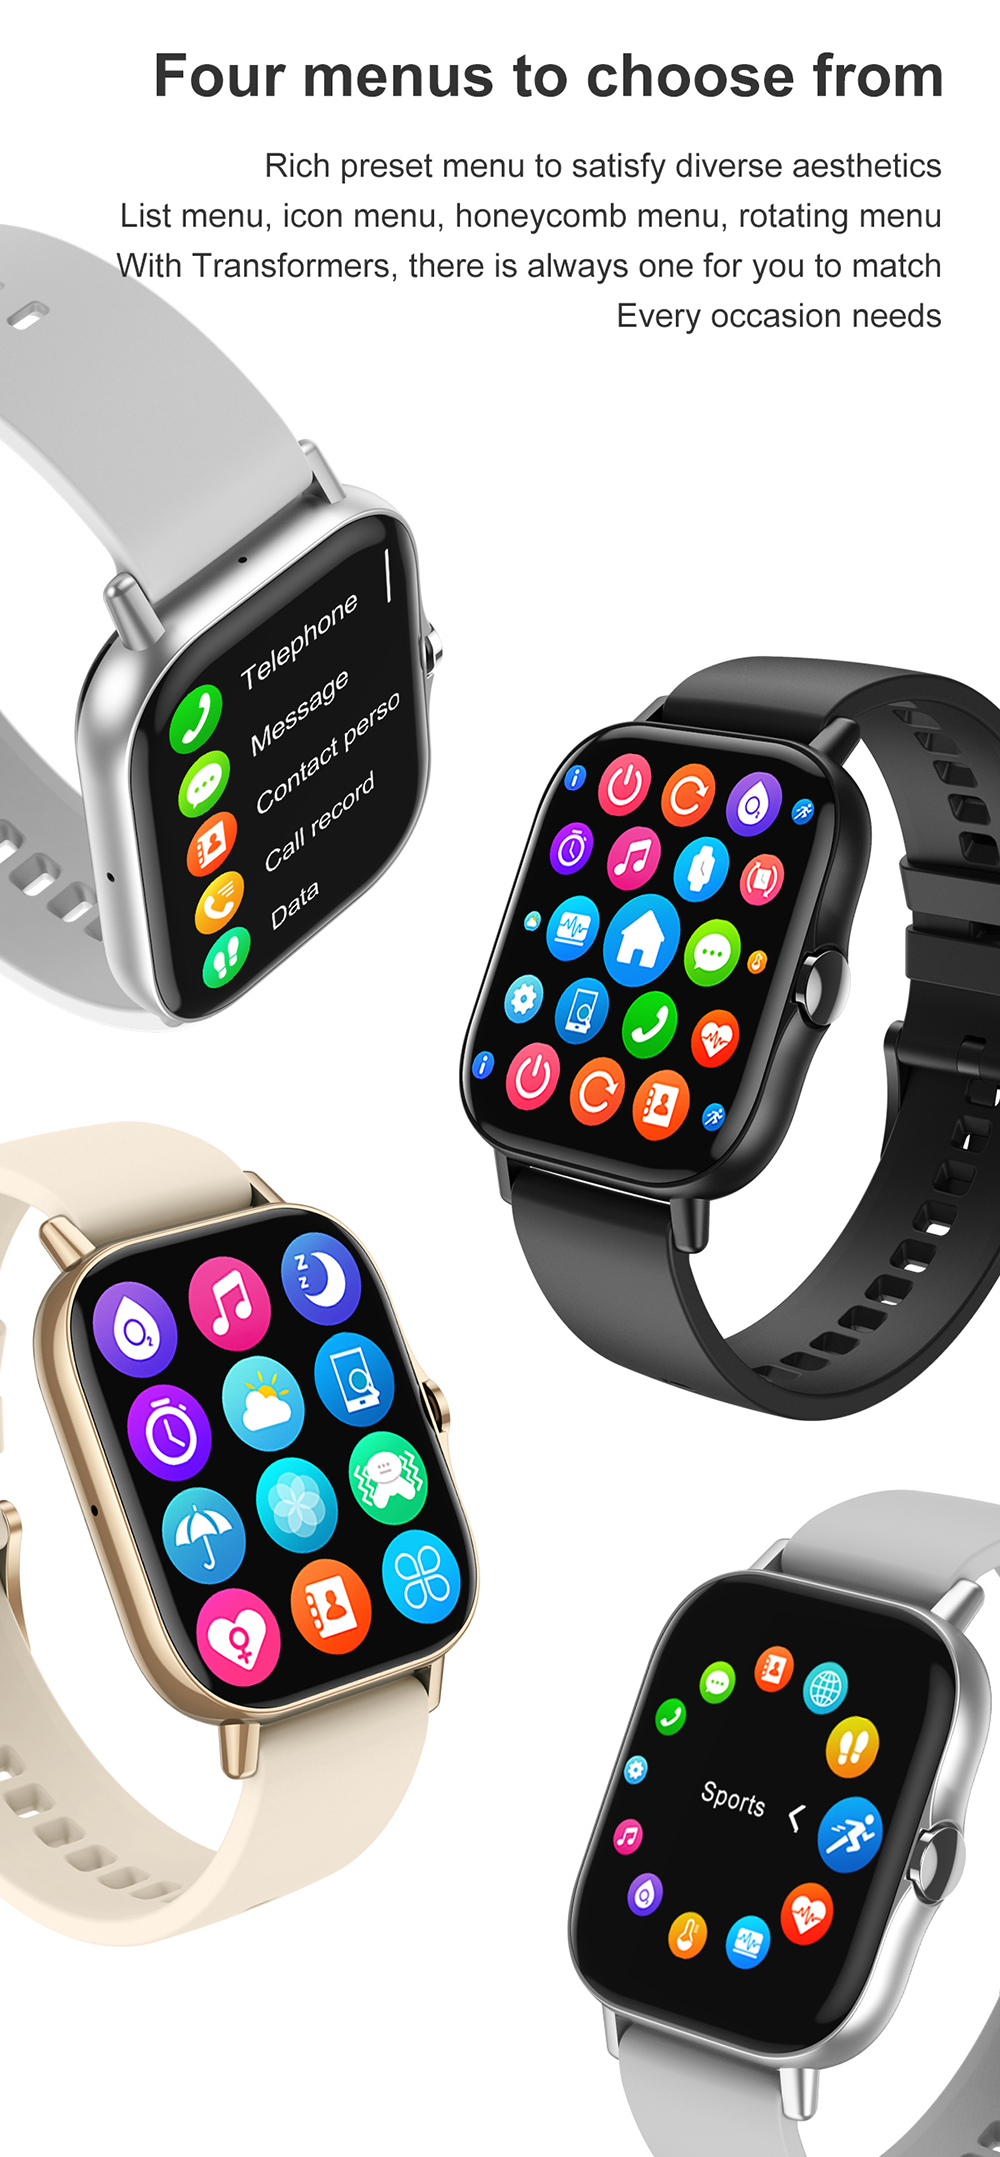 He9ad9d3d557f4e13b5f9c1b1d92c3a98Q For Xiaomi IOS Apple Phone 1.78inch Smart Watch Android Men IP68 Waterproof Full Touch Woman Smartwatch Women 2021 Answer Call